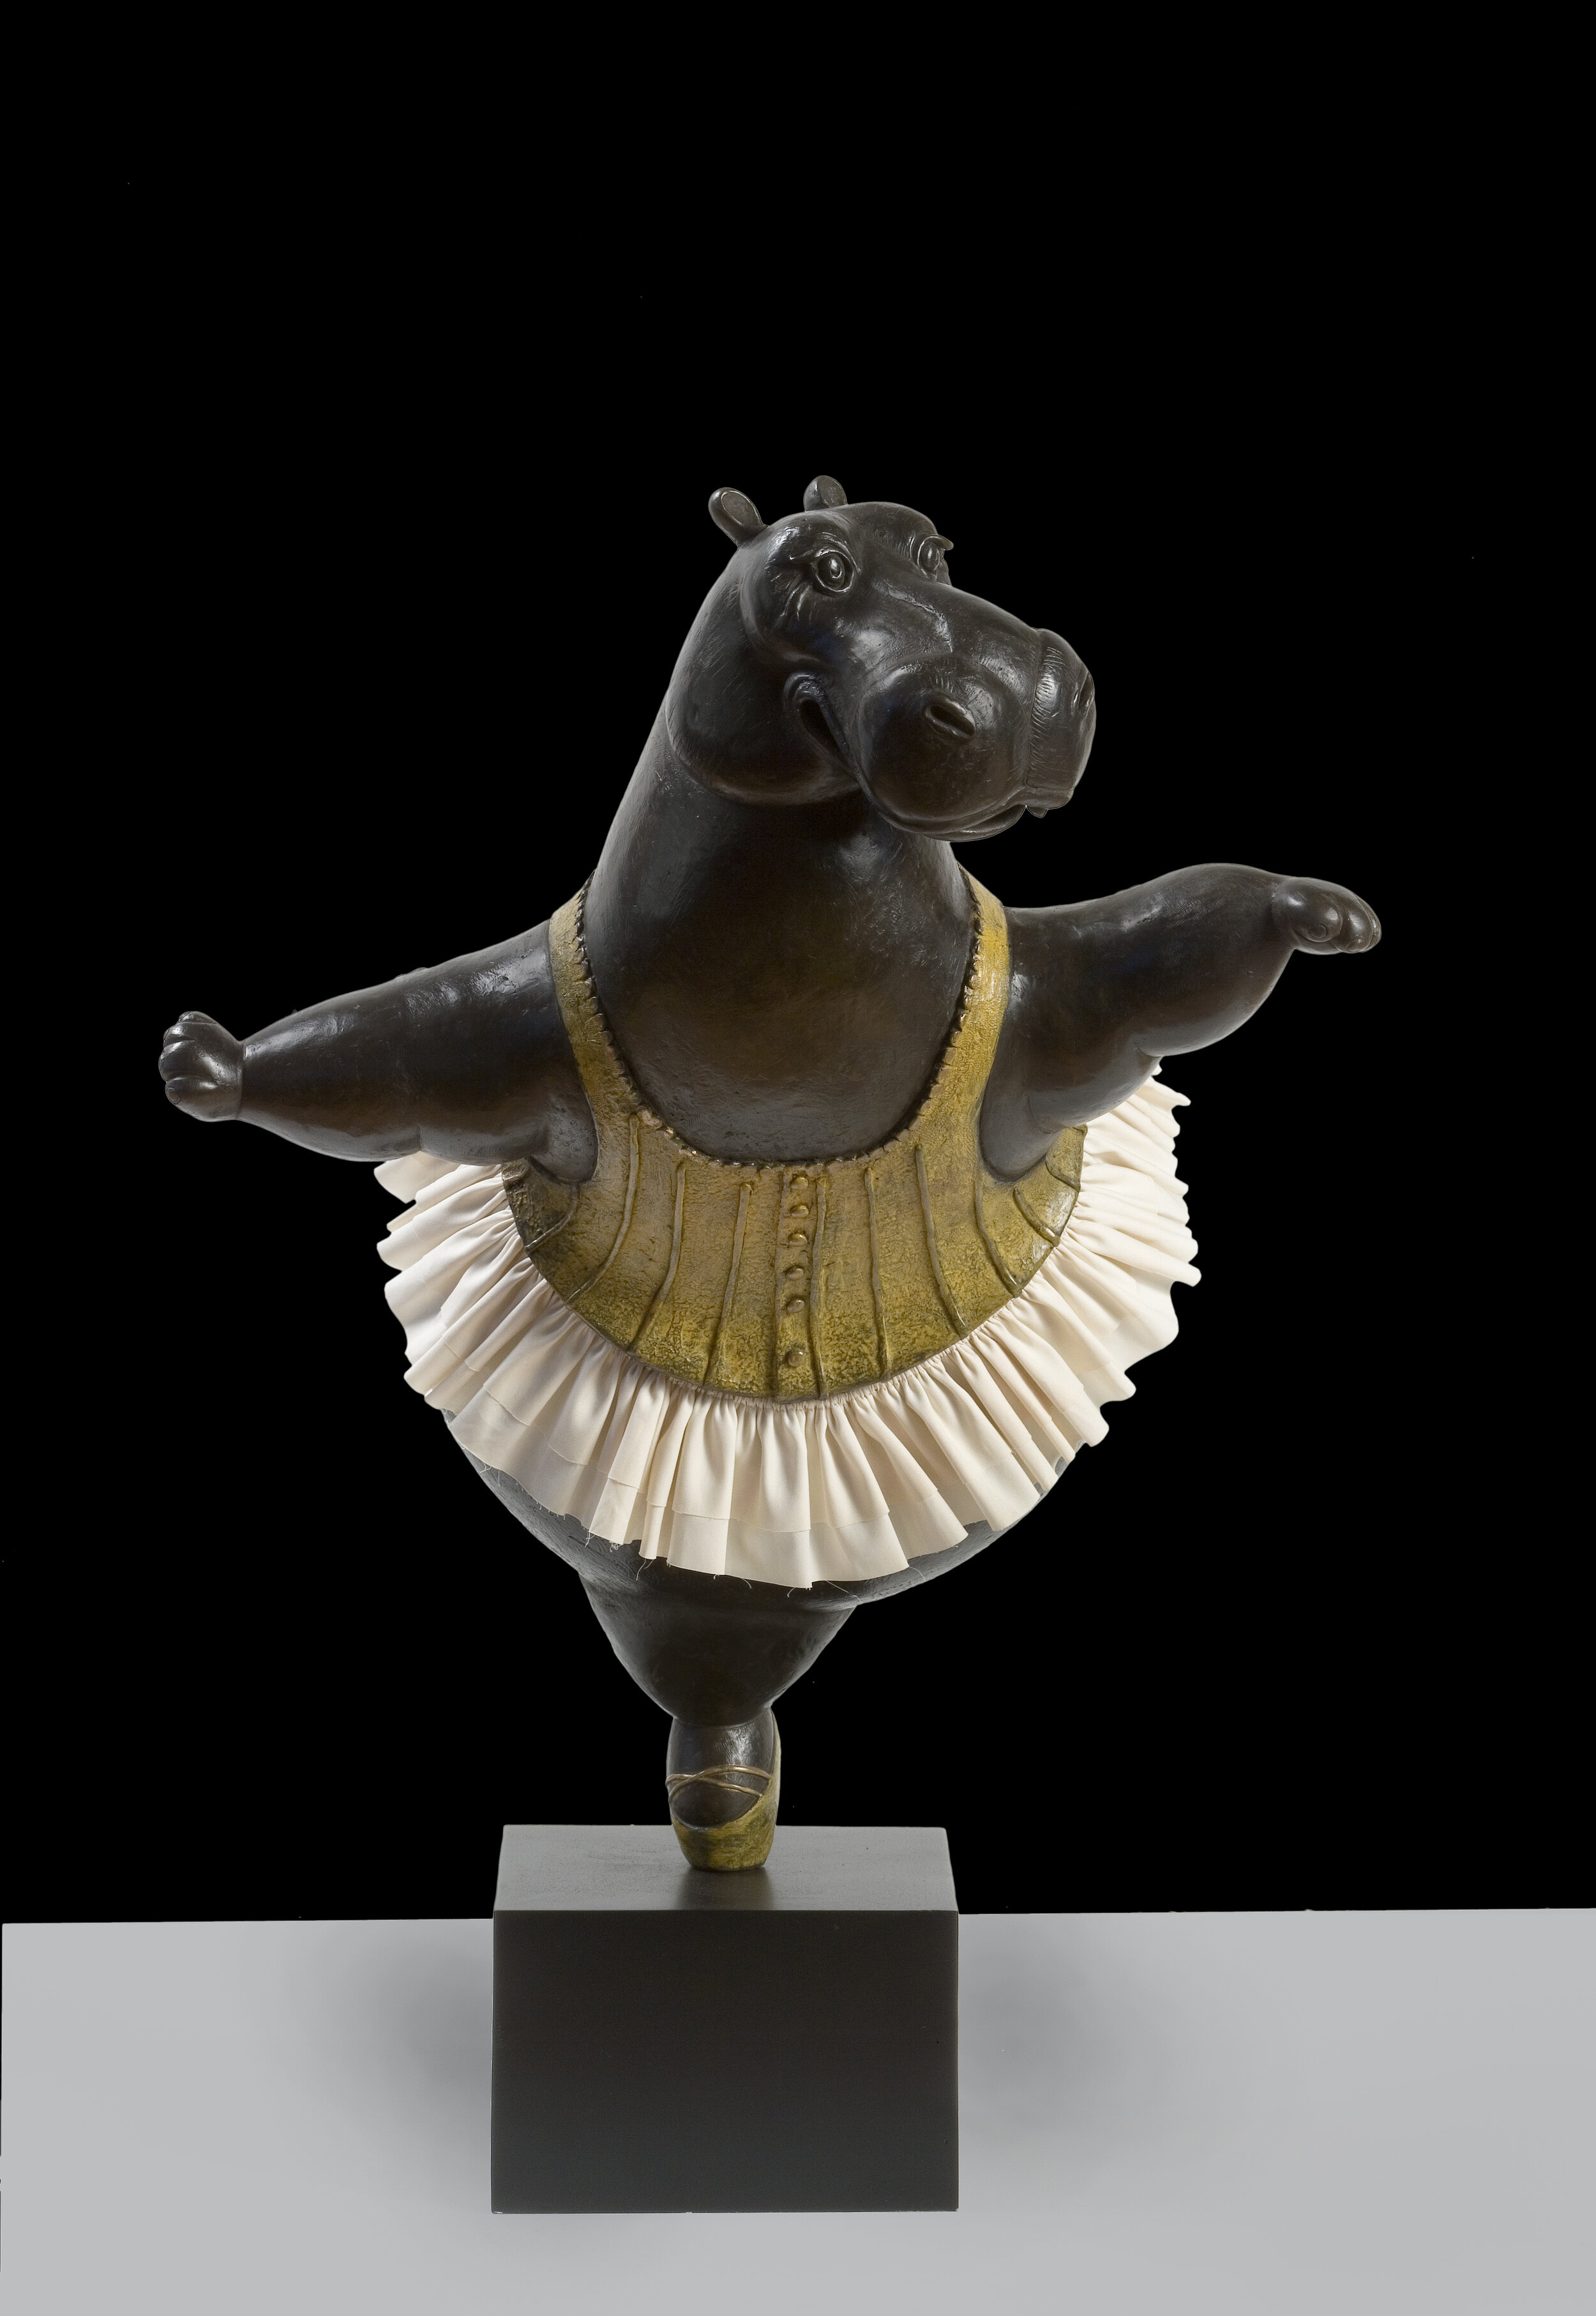 Hippo Ballerina, Pirouette, ed. 1/9 , 2019,  Bronze with fabric skirt  23 1/2 x 20 x 16 inches   Also available in maquette size:    Hippo Ballerina, Pirouette, ed. 1/9 , 2019 Bronze with fabric skirt 12 x 10 x 8 inches